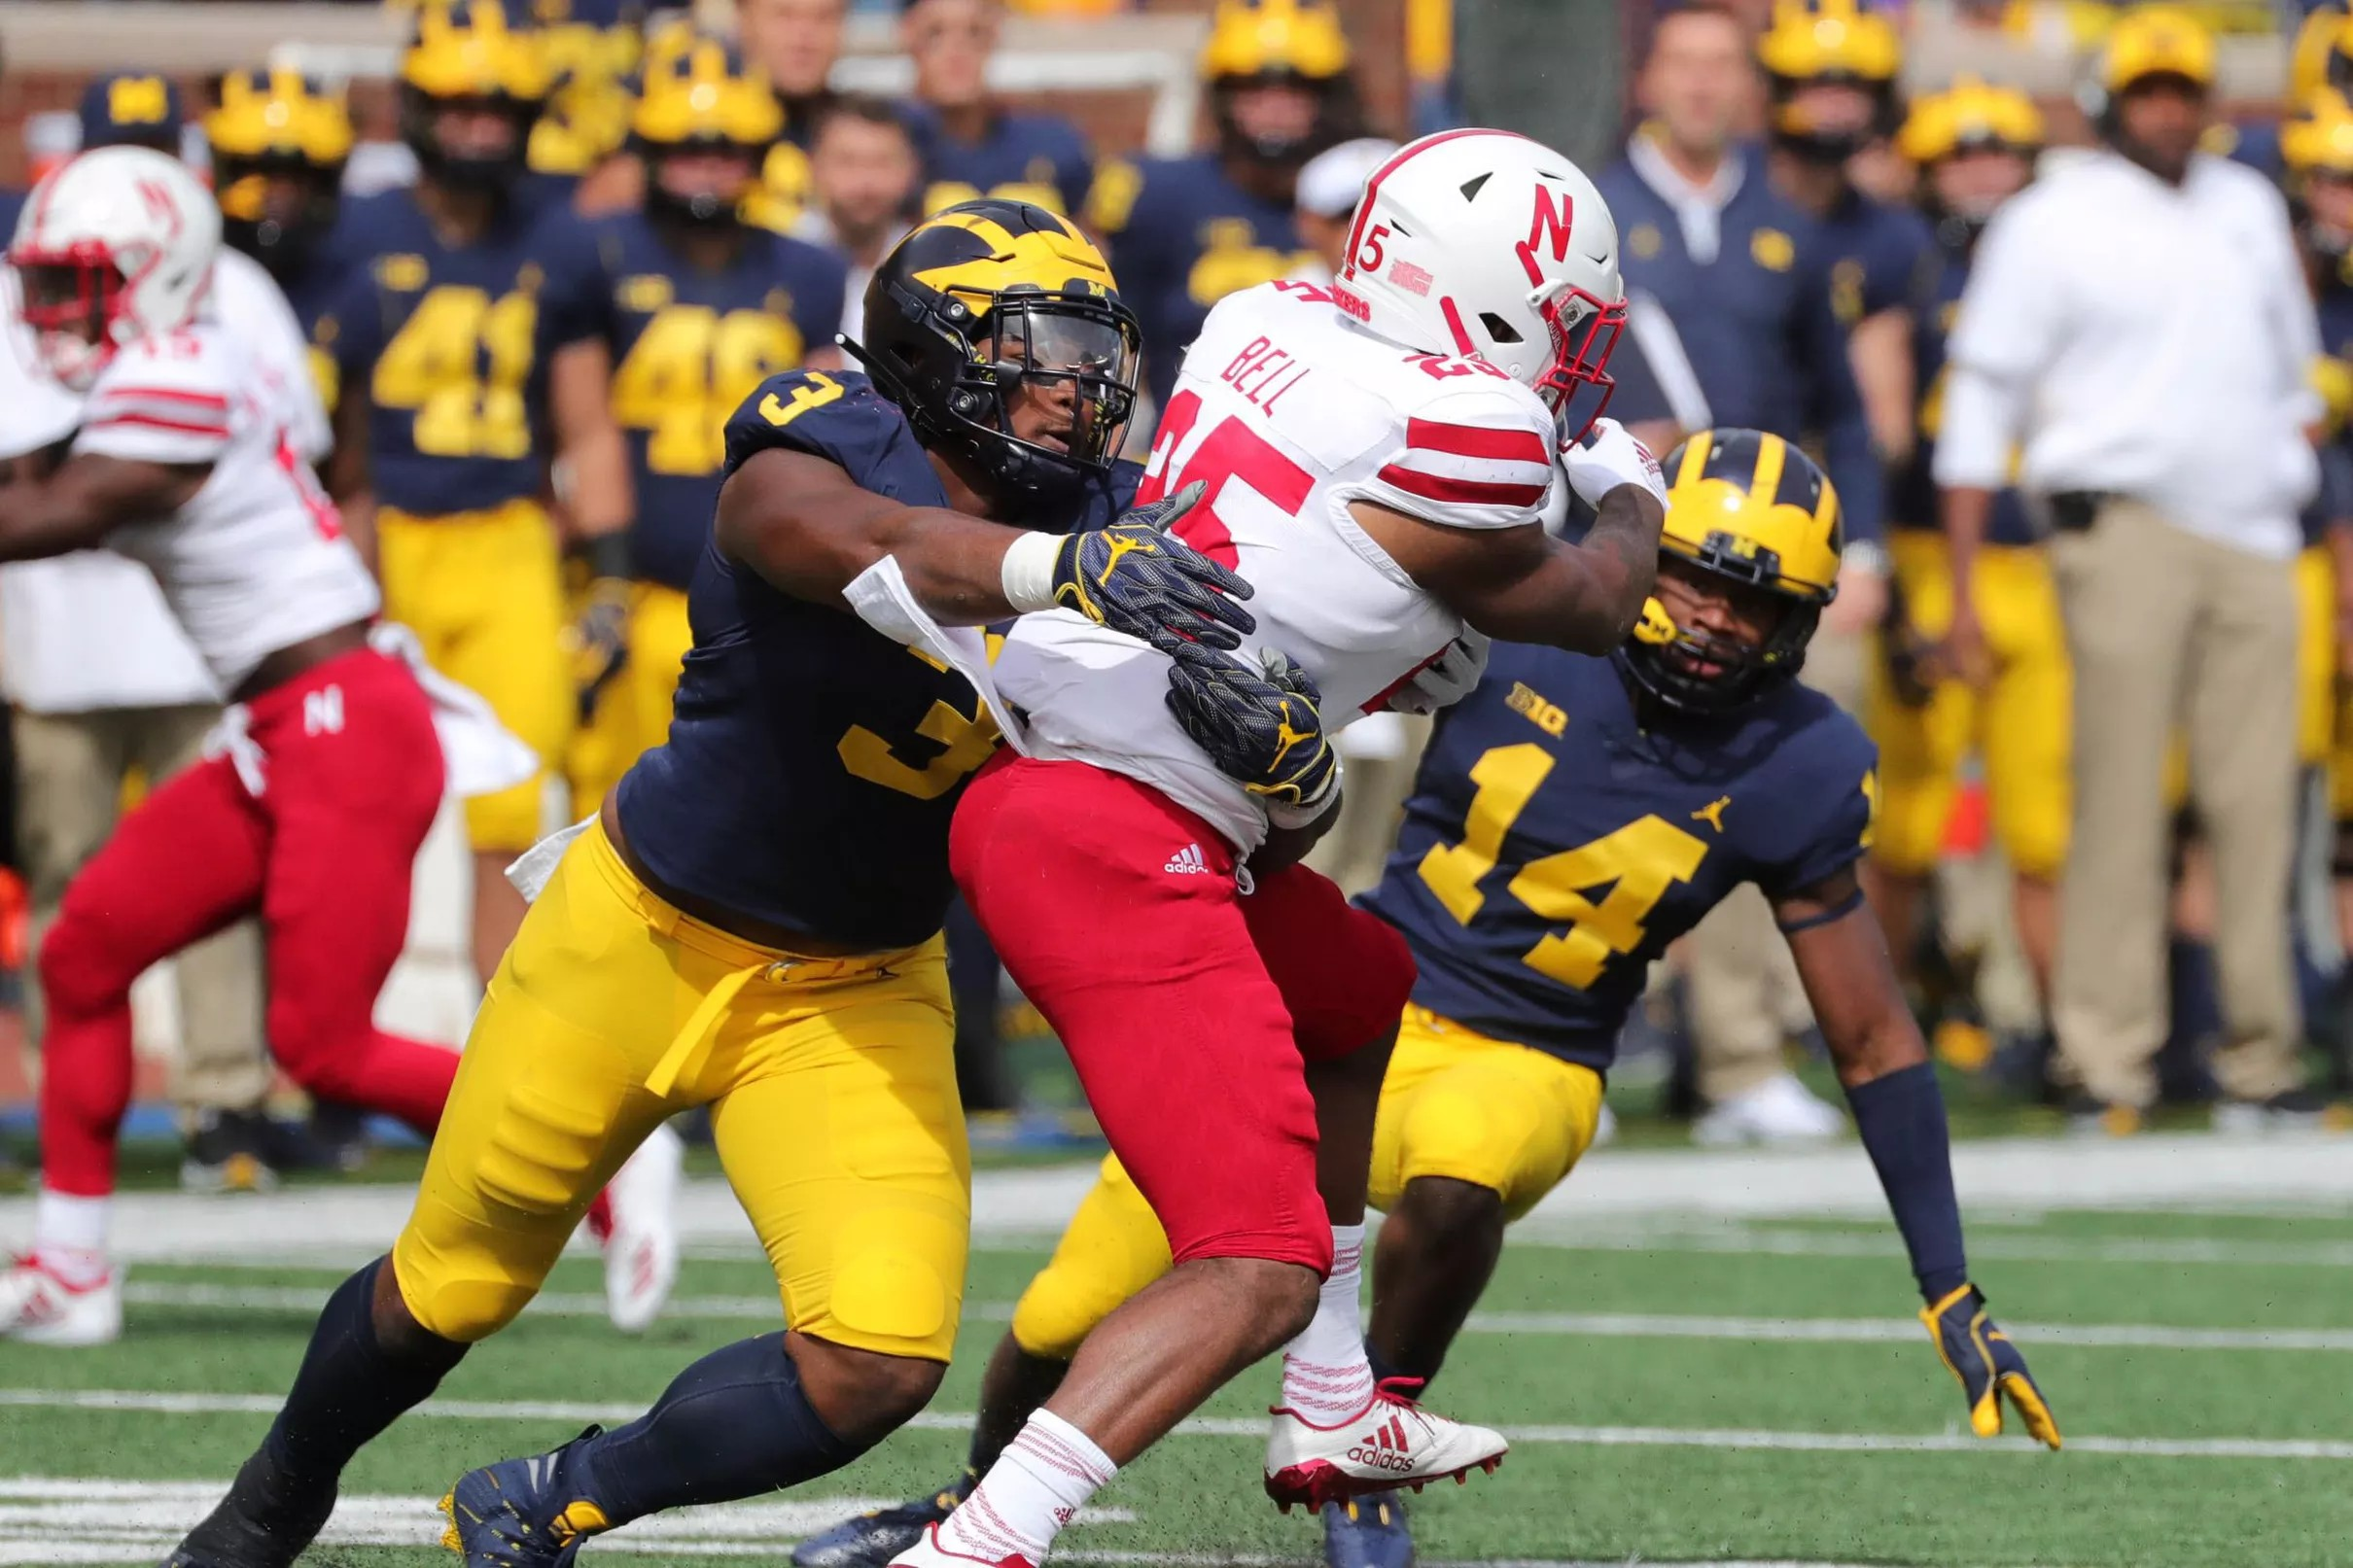 Lions notes: Michigan-Michigan State is full of NFL prospects